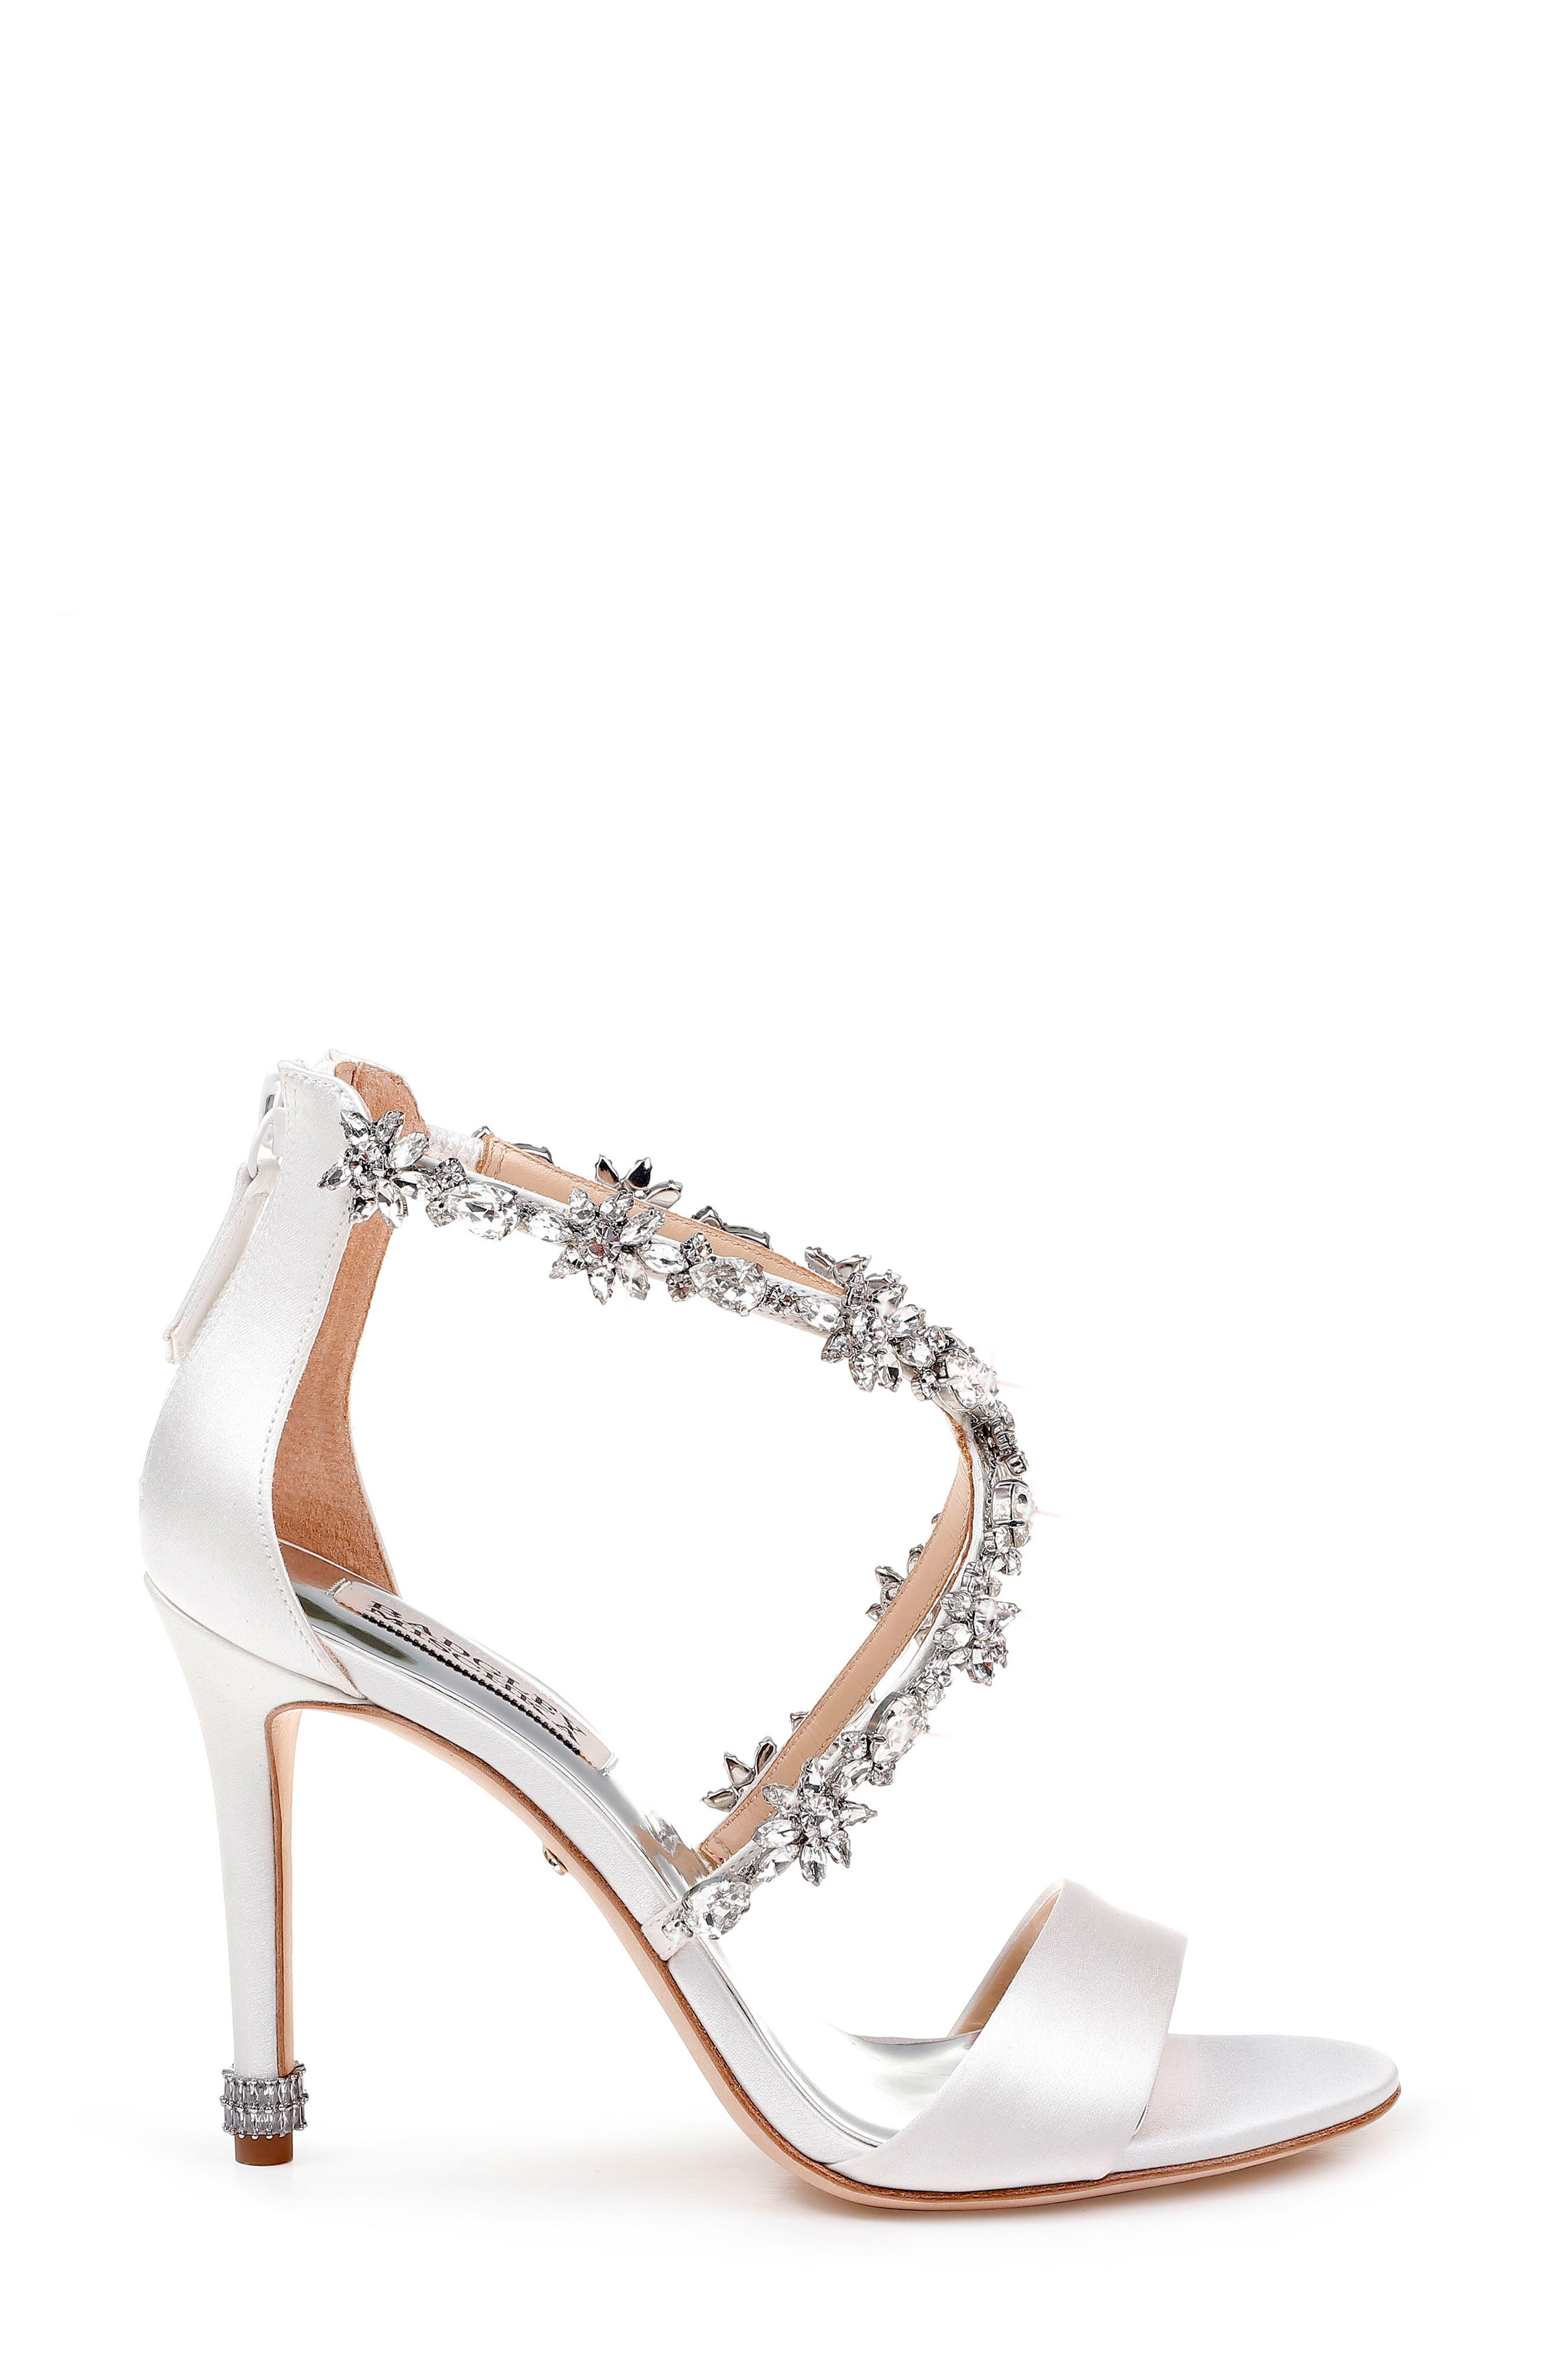 Crystal Embellished Sandal,                             Alternate thumbnail 3, color,                             SOFT WHITE SATIN